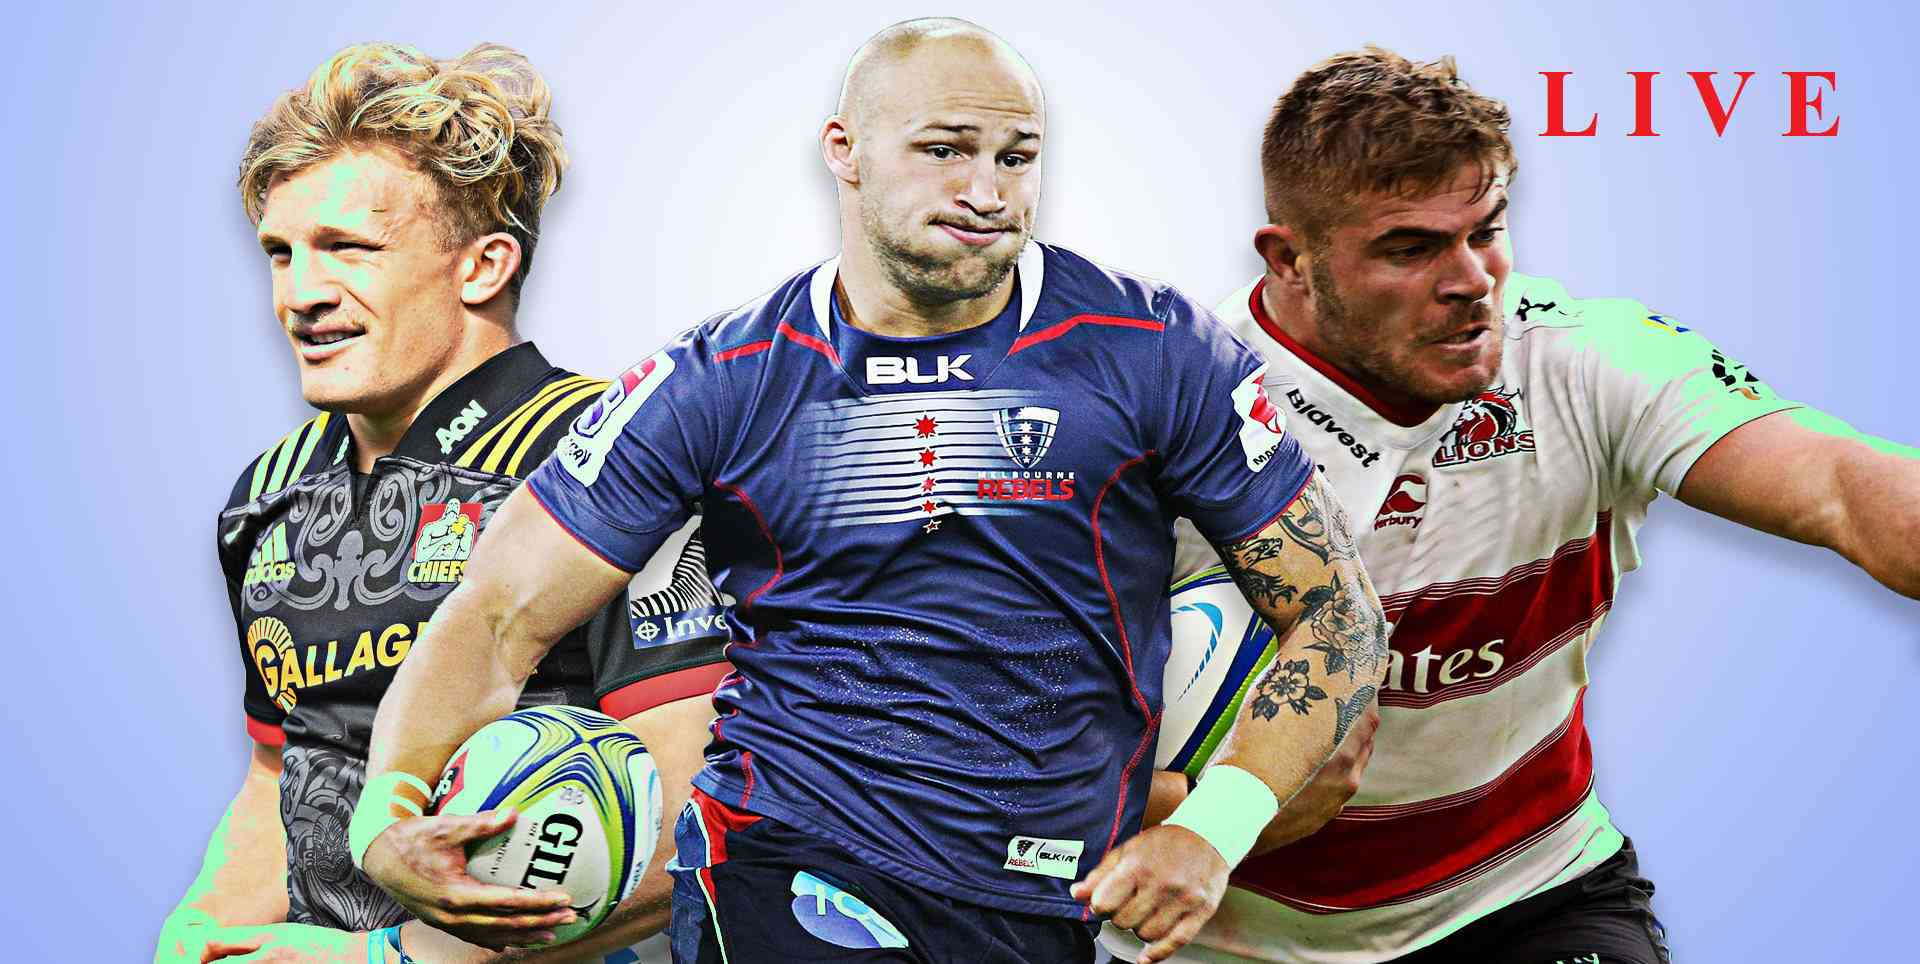 Watch France vs England RLWC Live